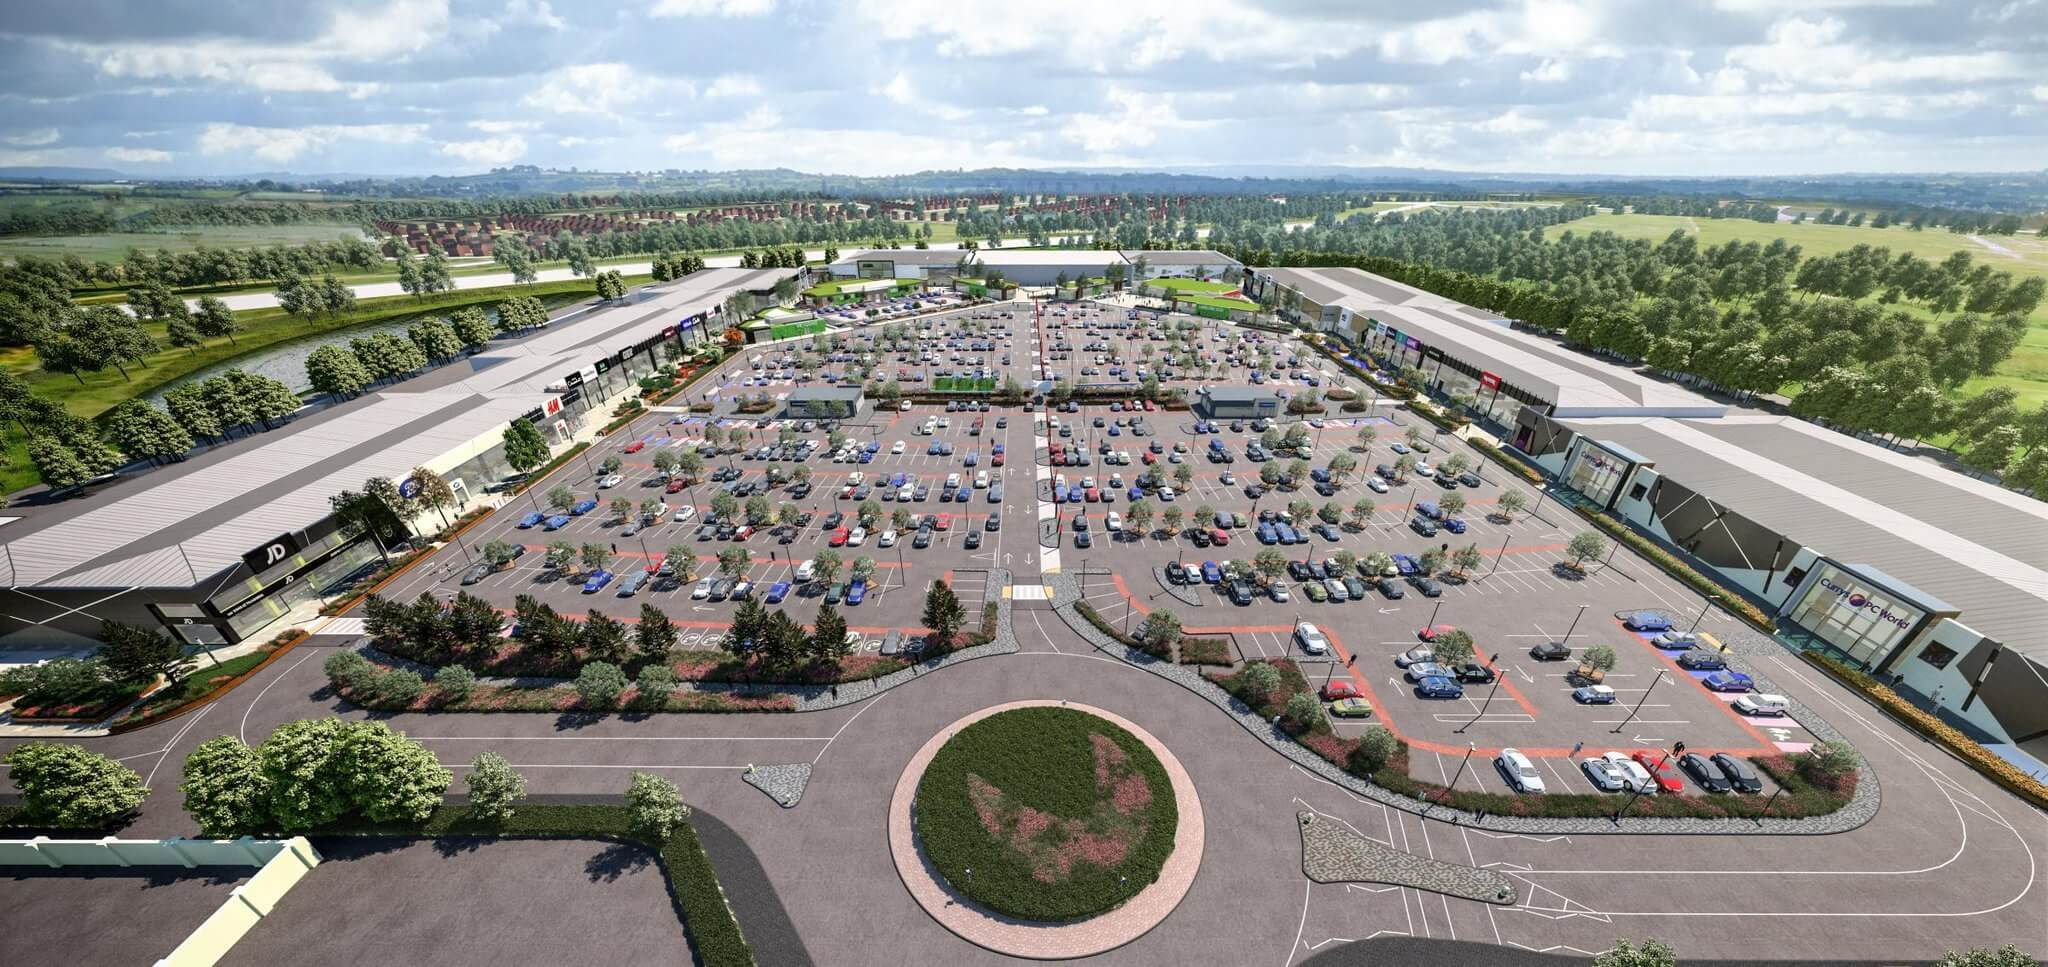 Multi-million pound investment to help traffic flow at Teesside Park